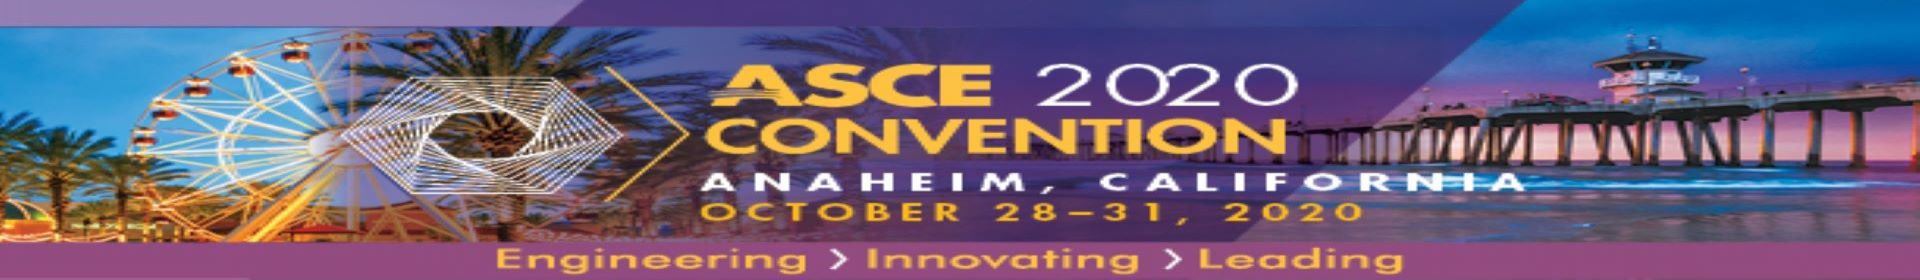 2020 ASCE Annual Meeting Event Banner